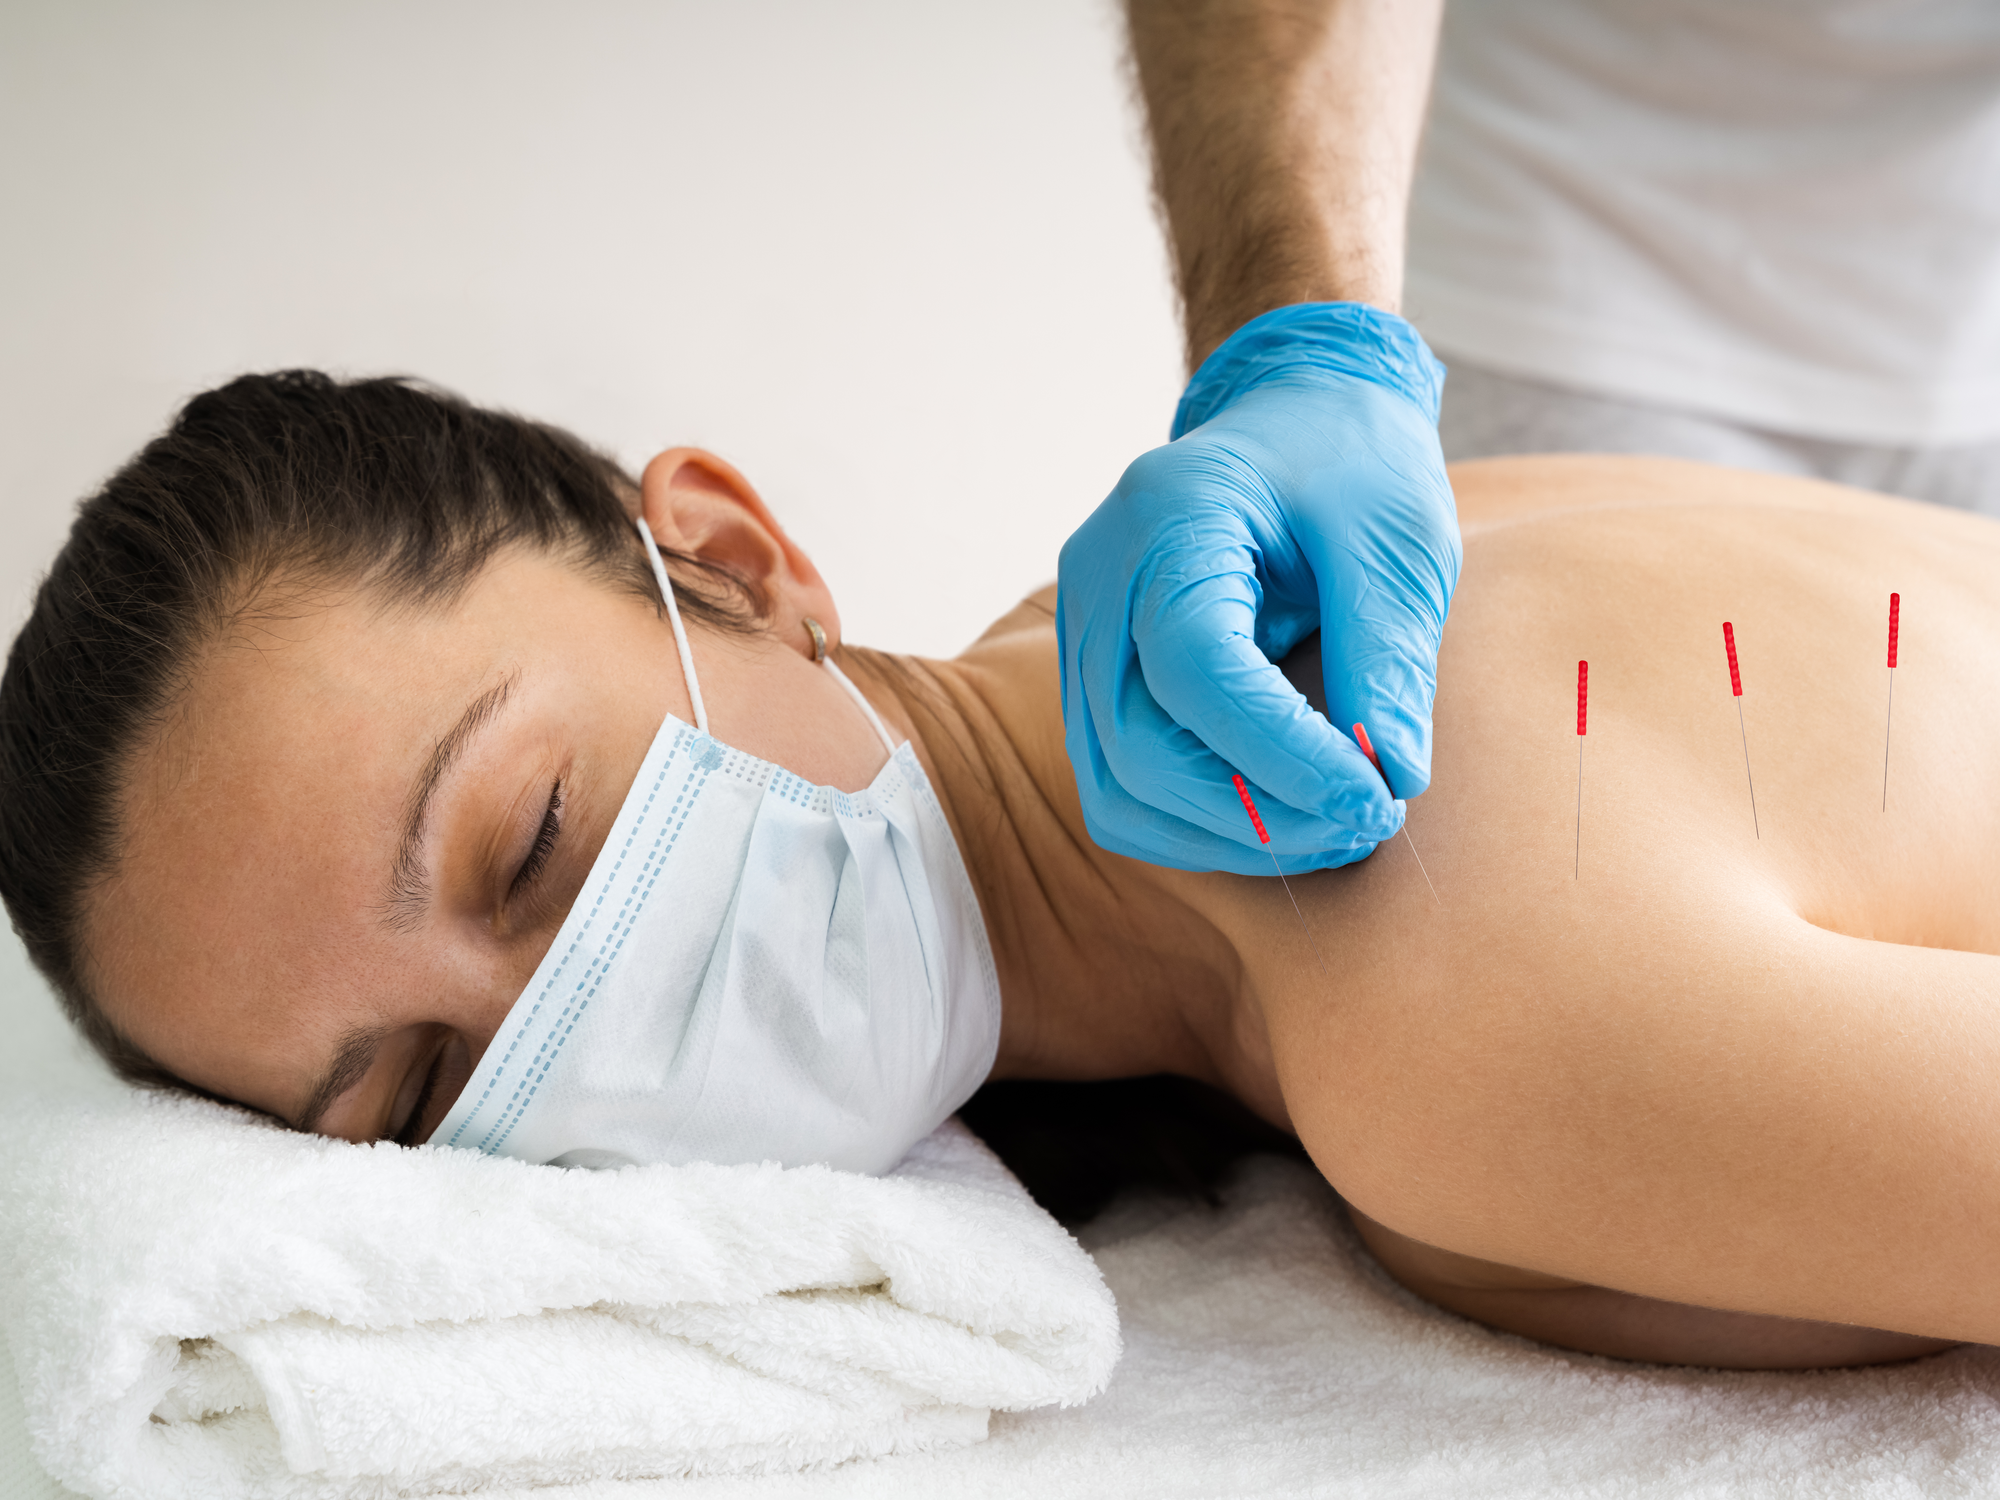 What Conditions Does Trigger Point Dry Needling Help With